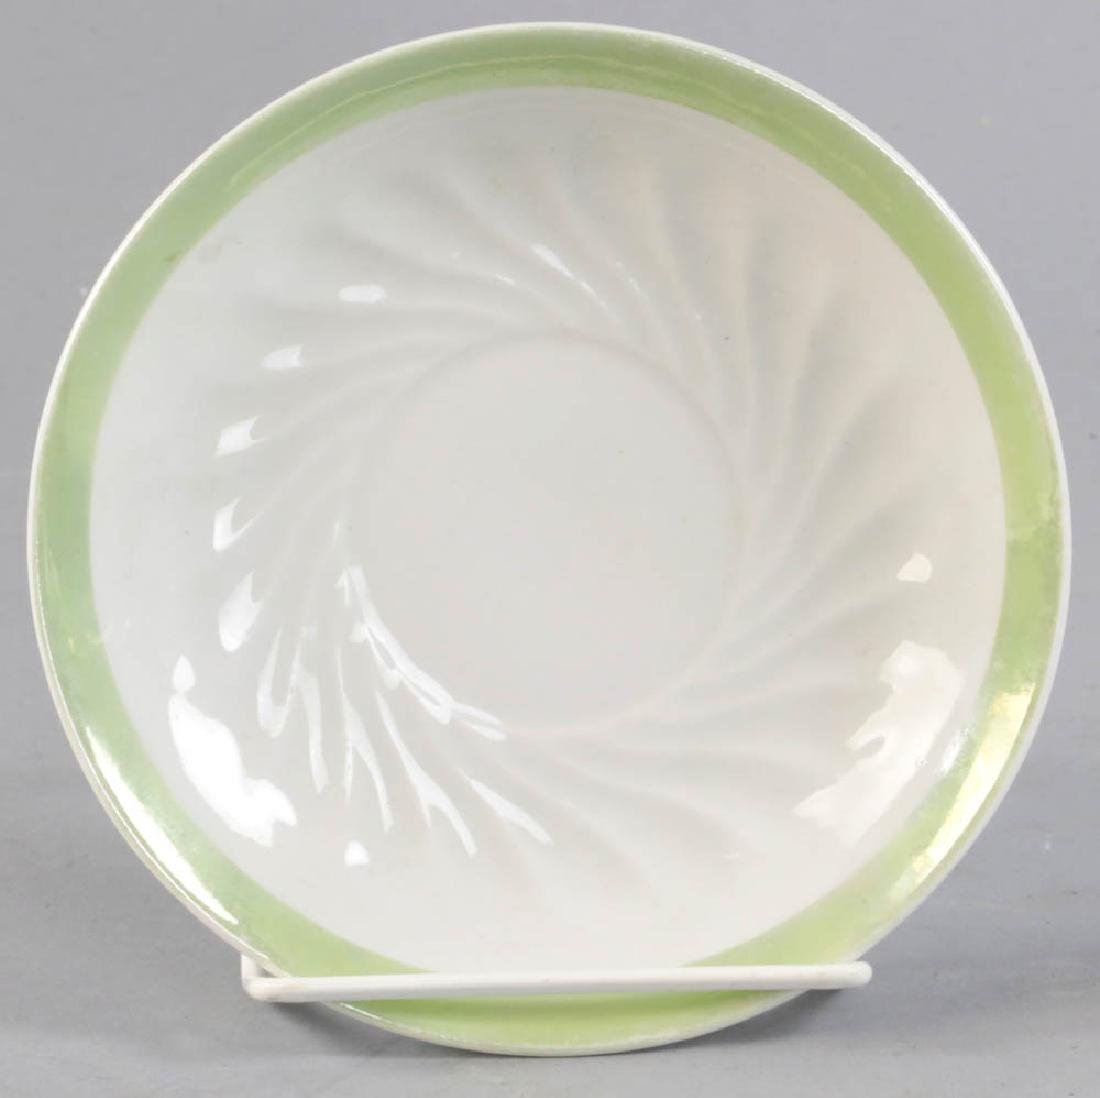 Collection of China Plates, Candle Collars - 2